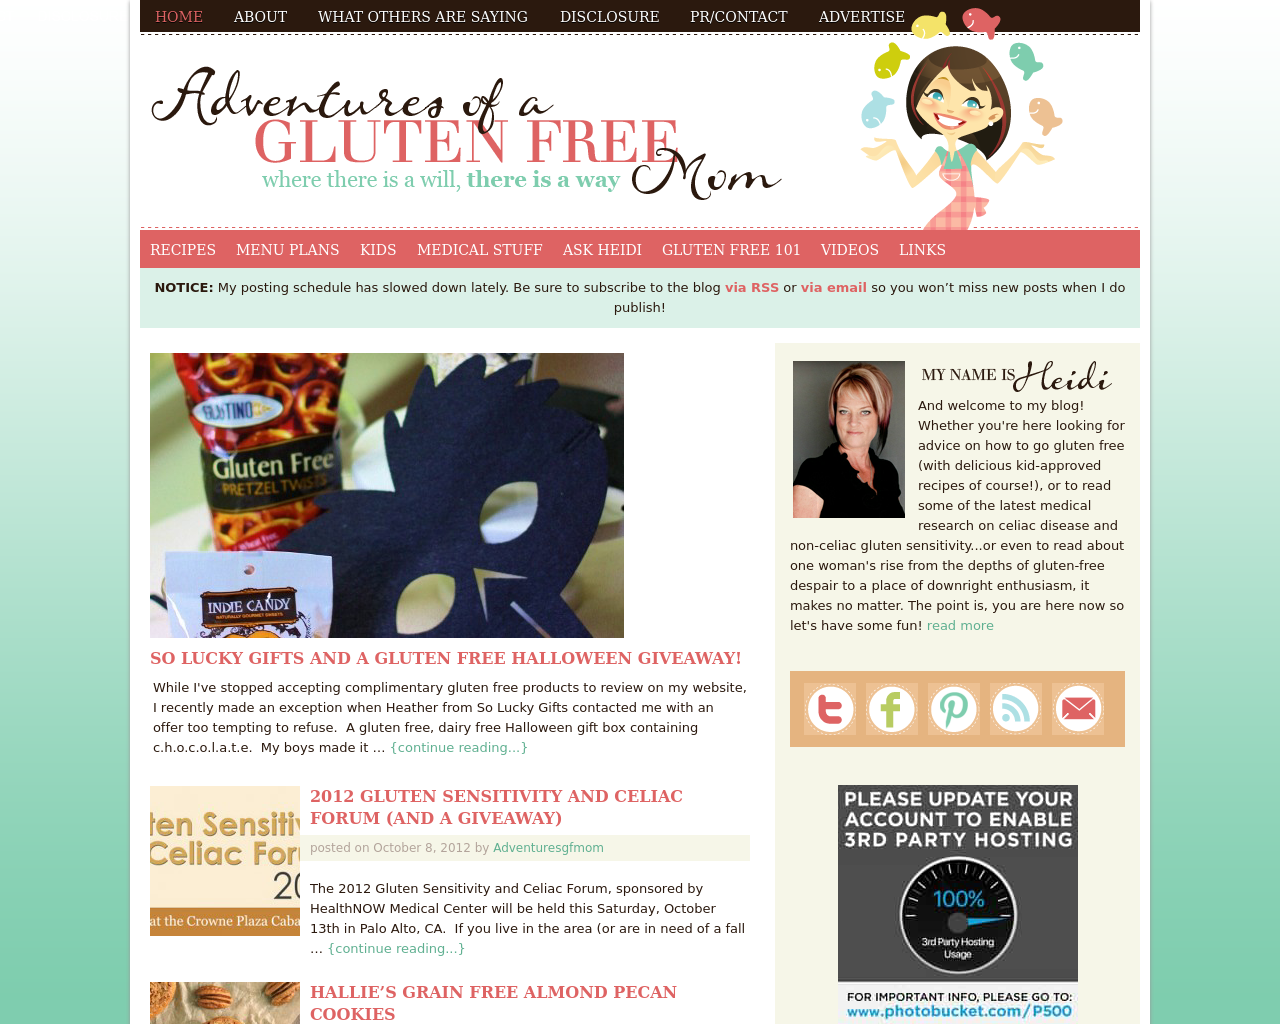 Adventures-Of-A-Gluten-Free-Mom-Advertising-Reviews-Pricing